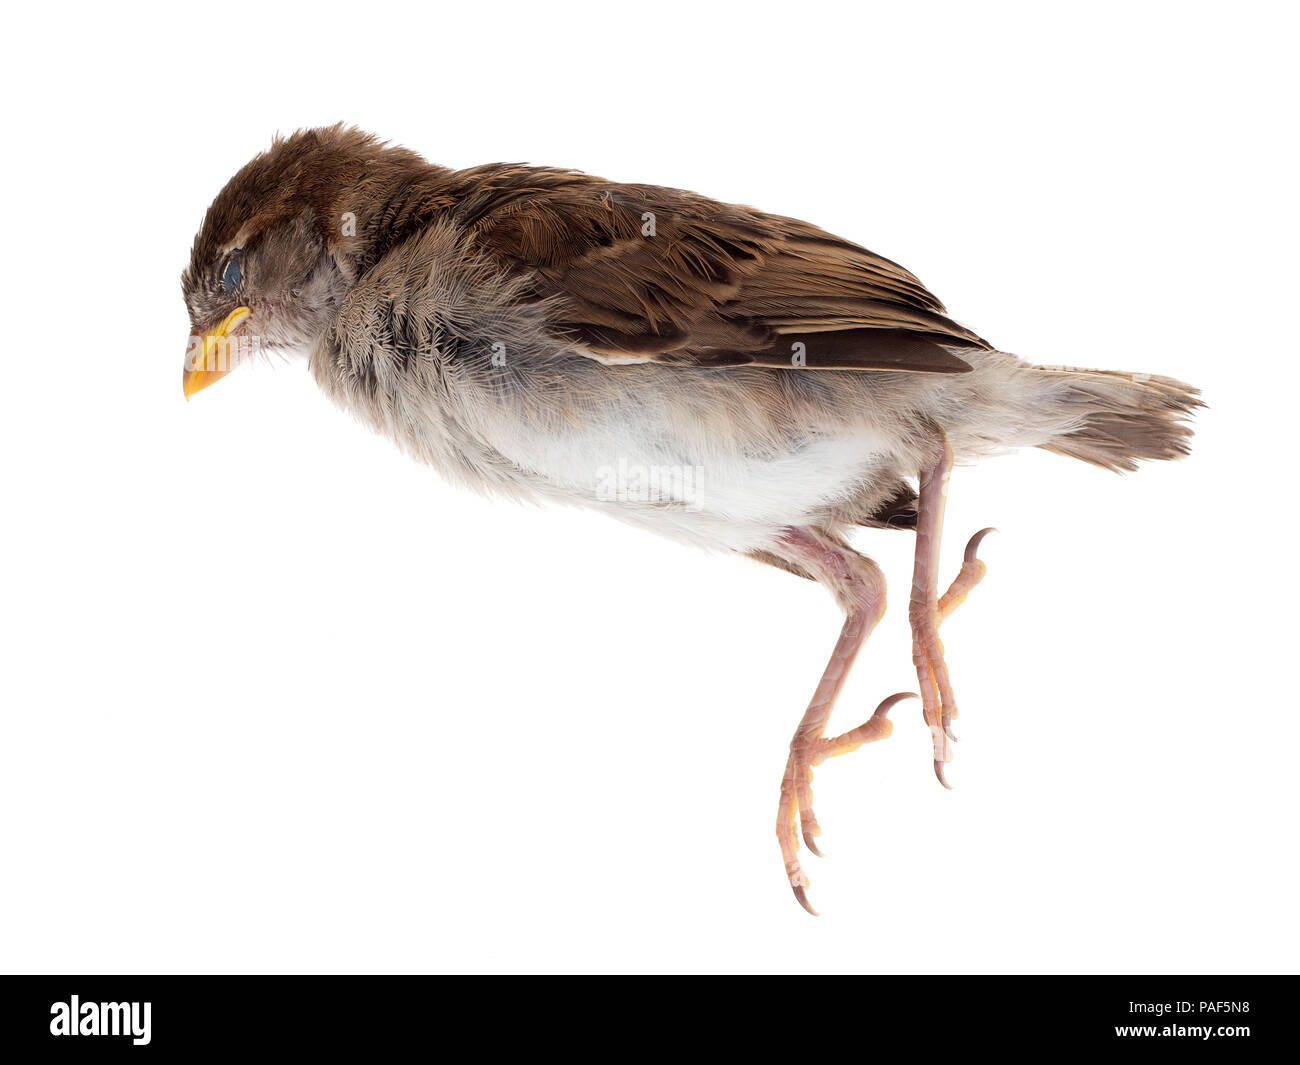 A dead sparrow, sadly killed by my pet cat. On white background. Young bird, just a fledgeling. Passeridae. Stock Photo